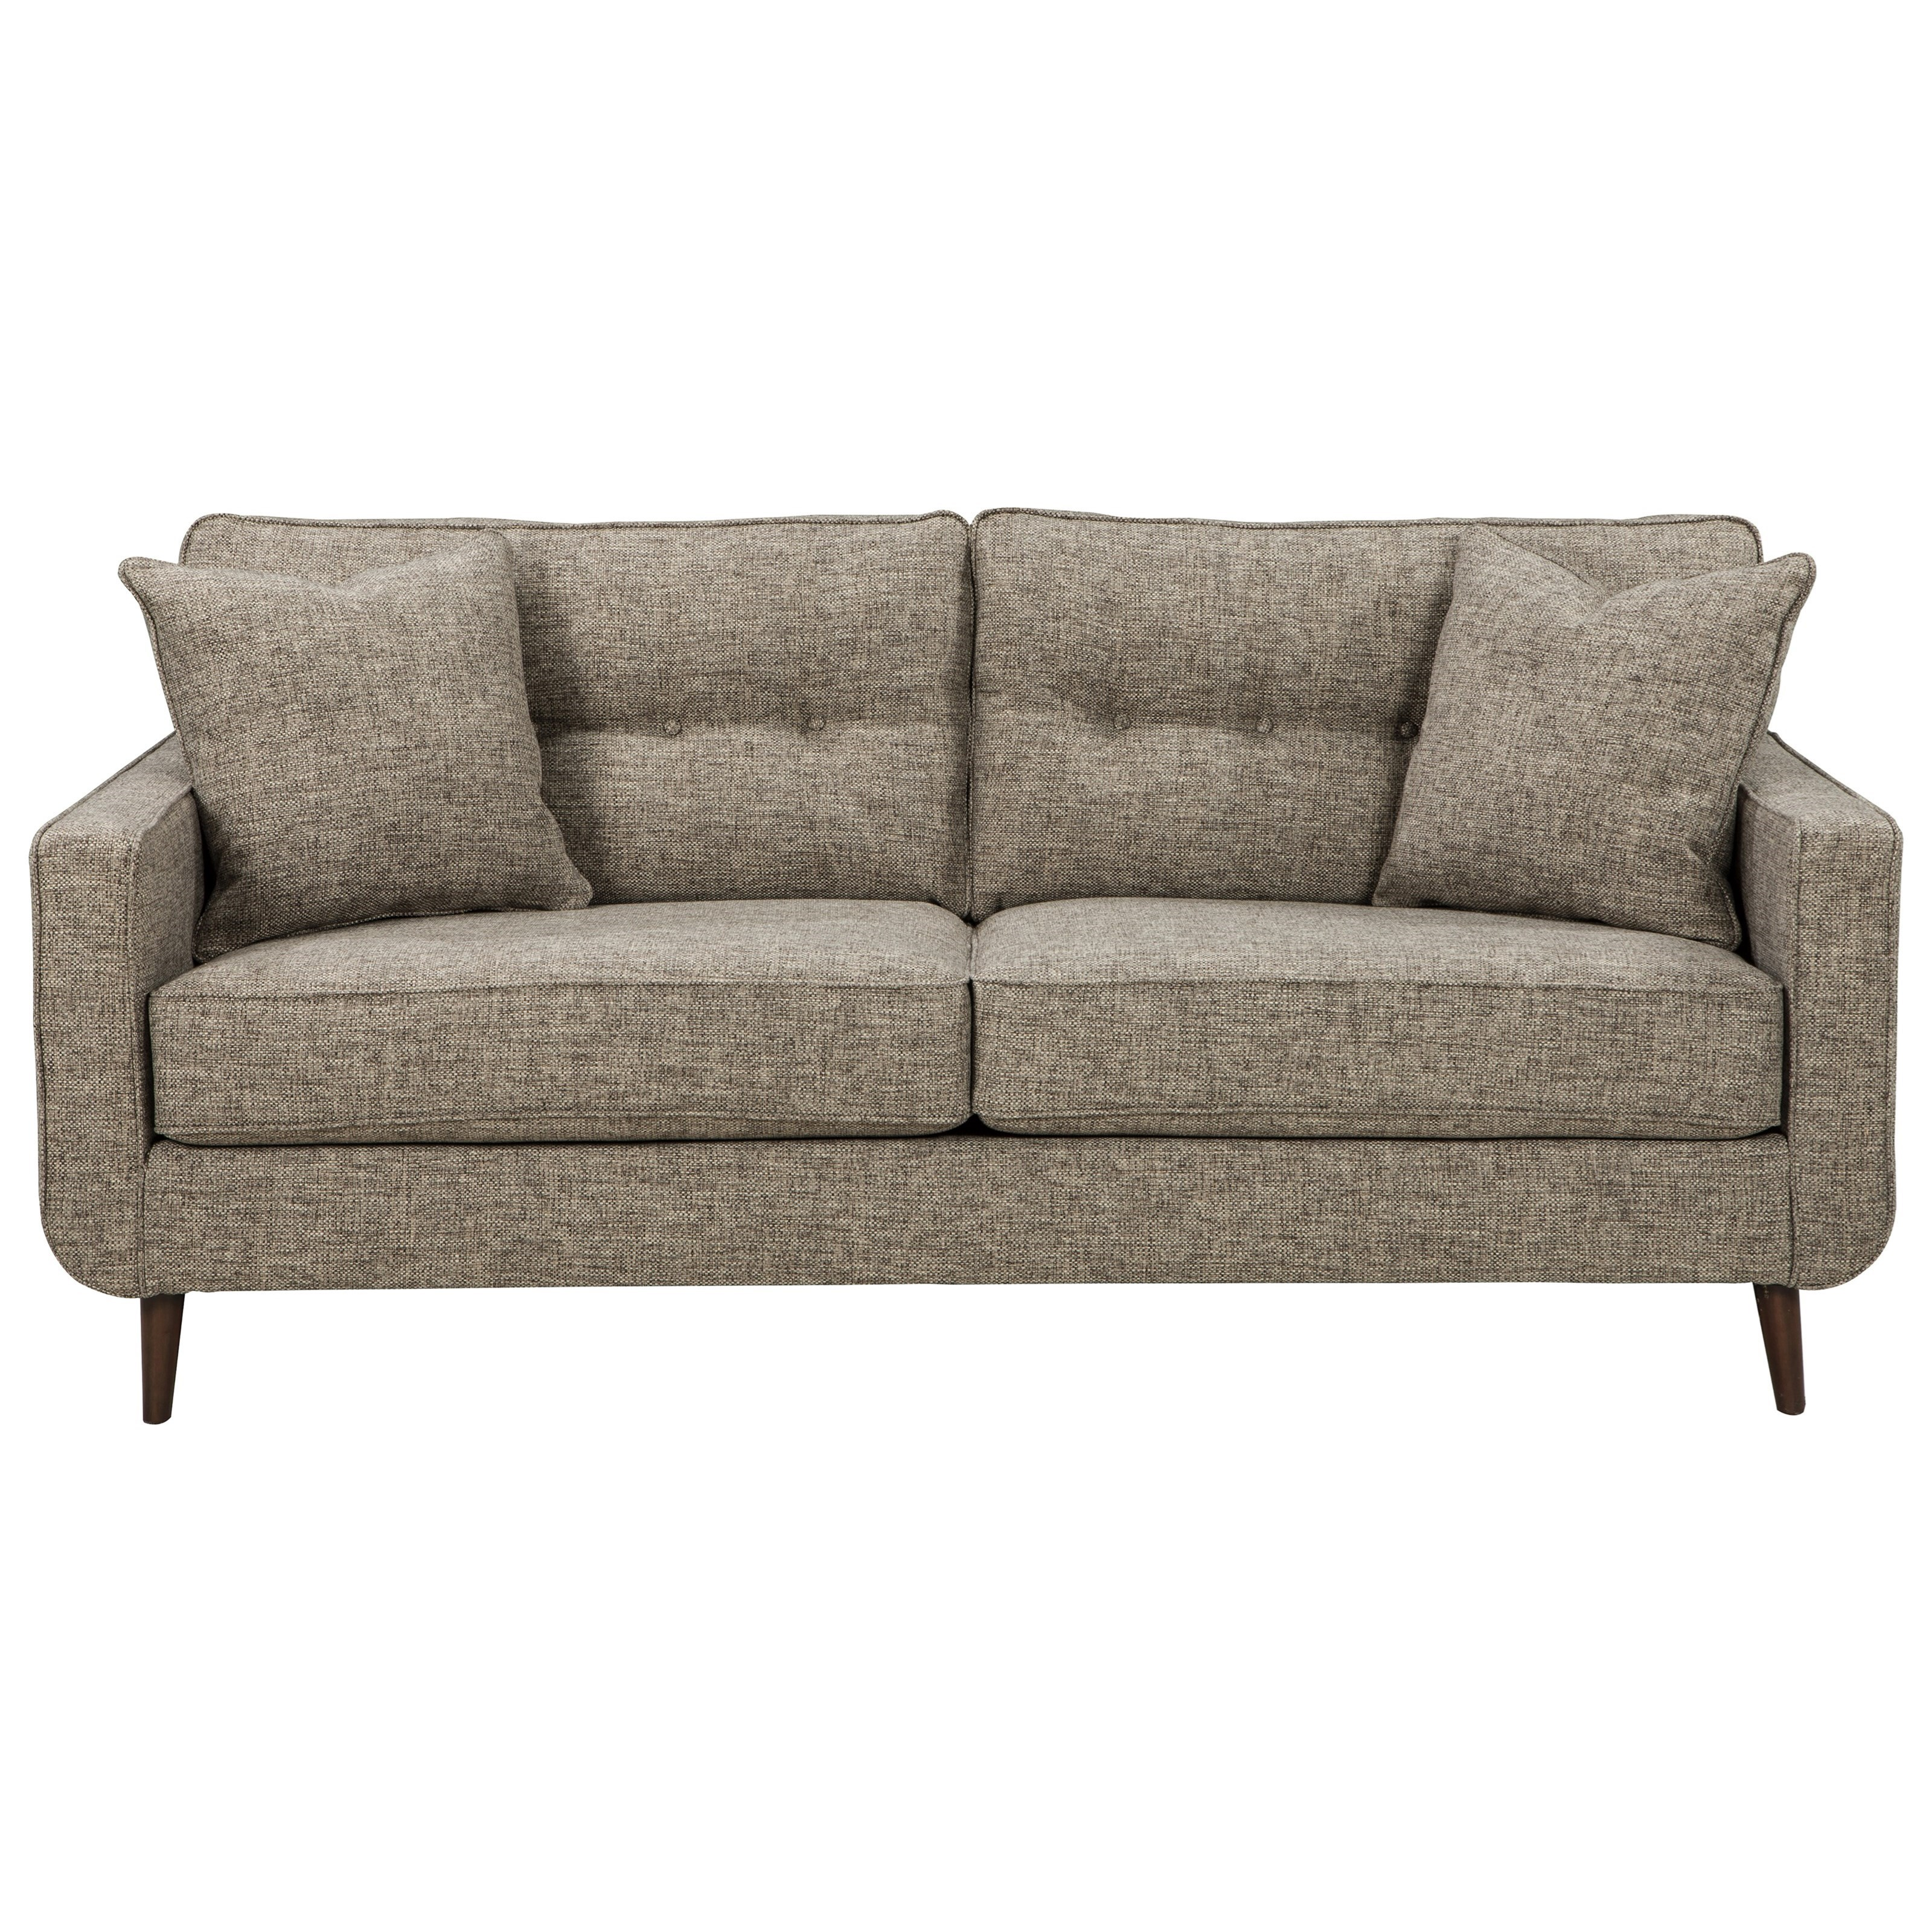 Dahra Sofa by Benchcraft at Northeast Factory Direct